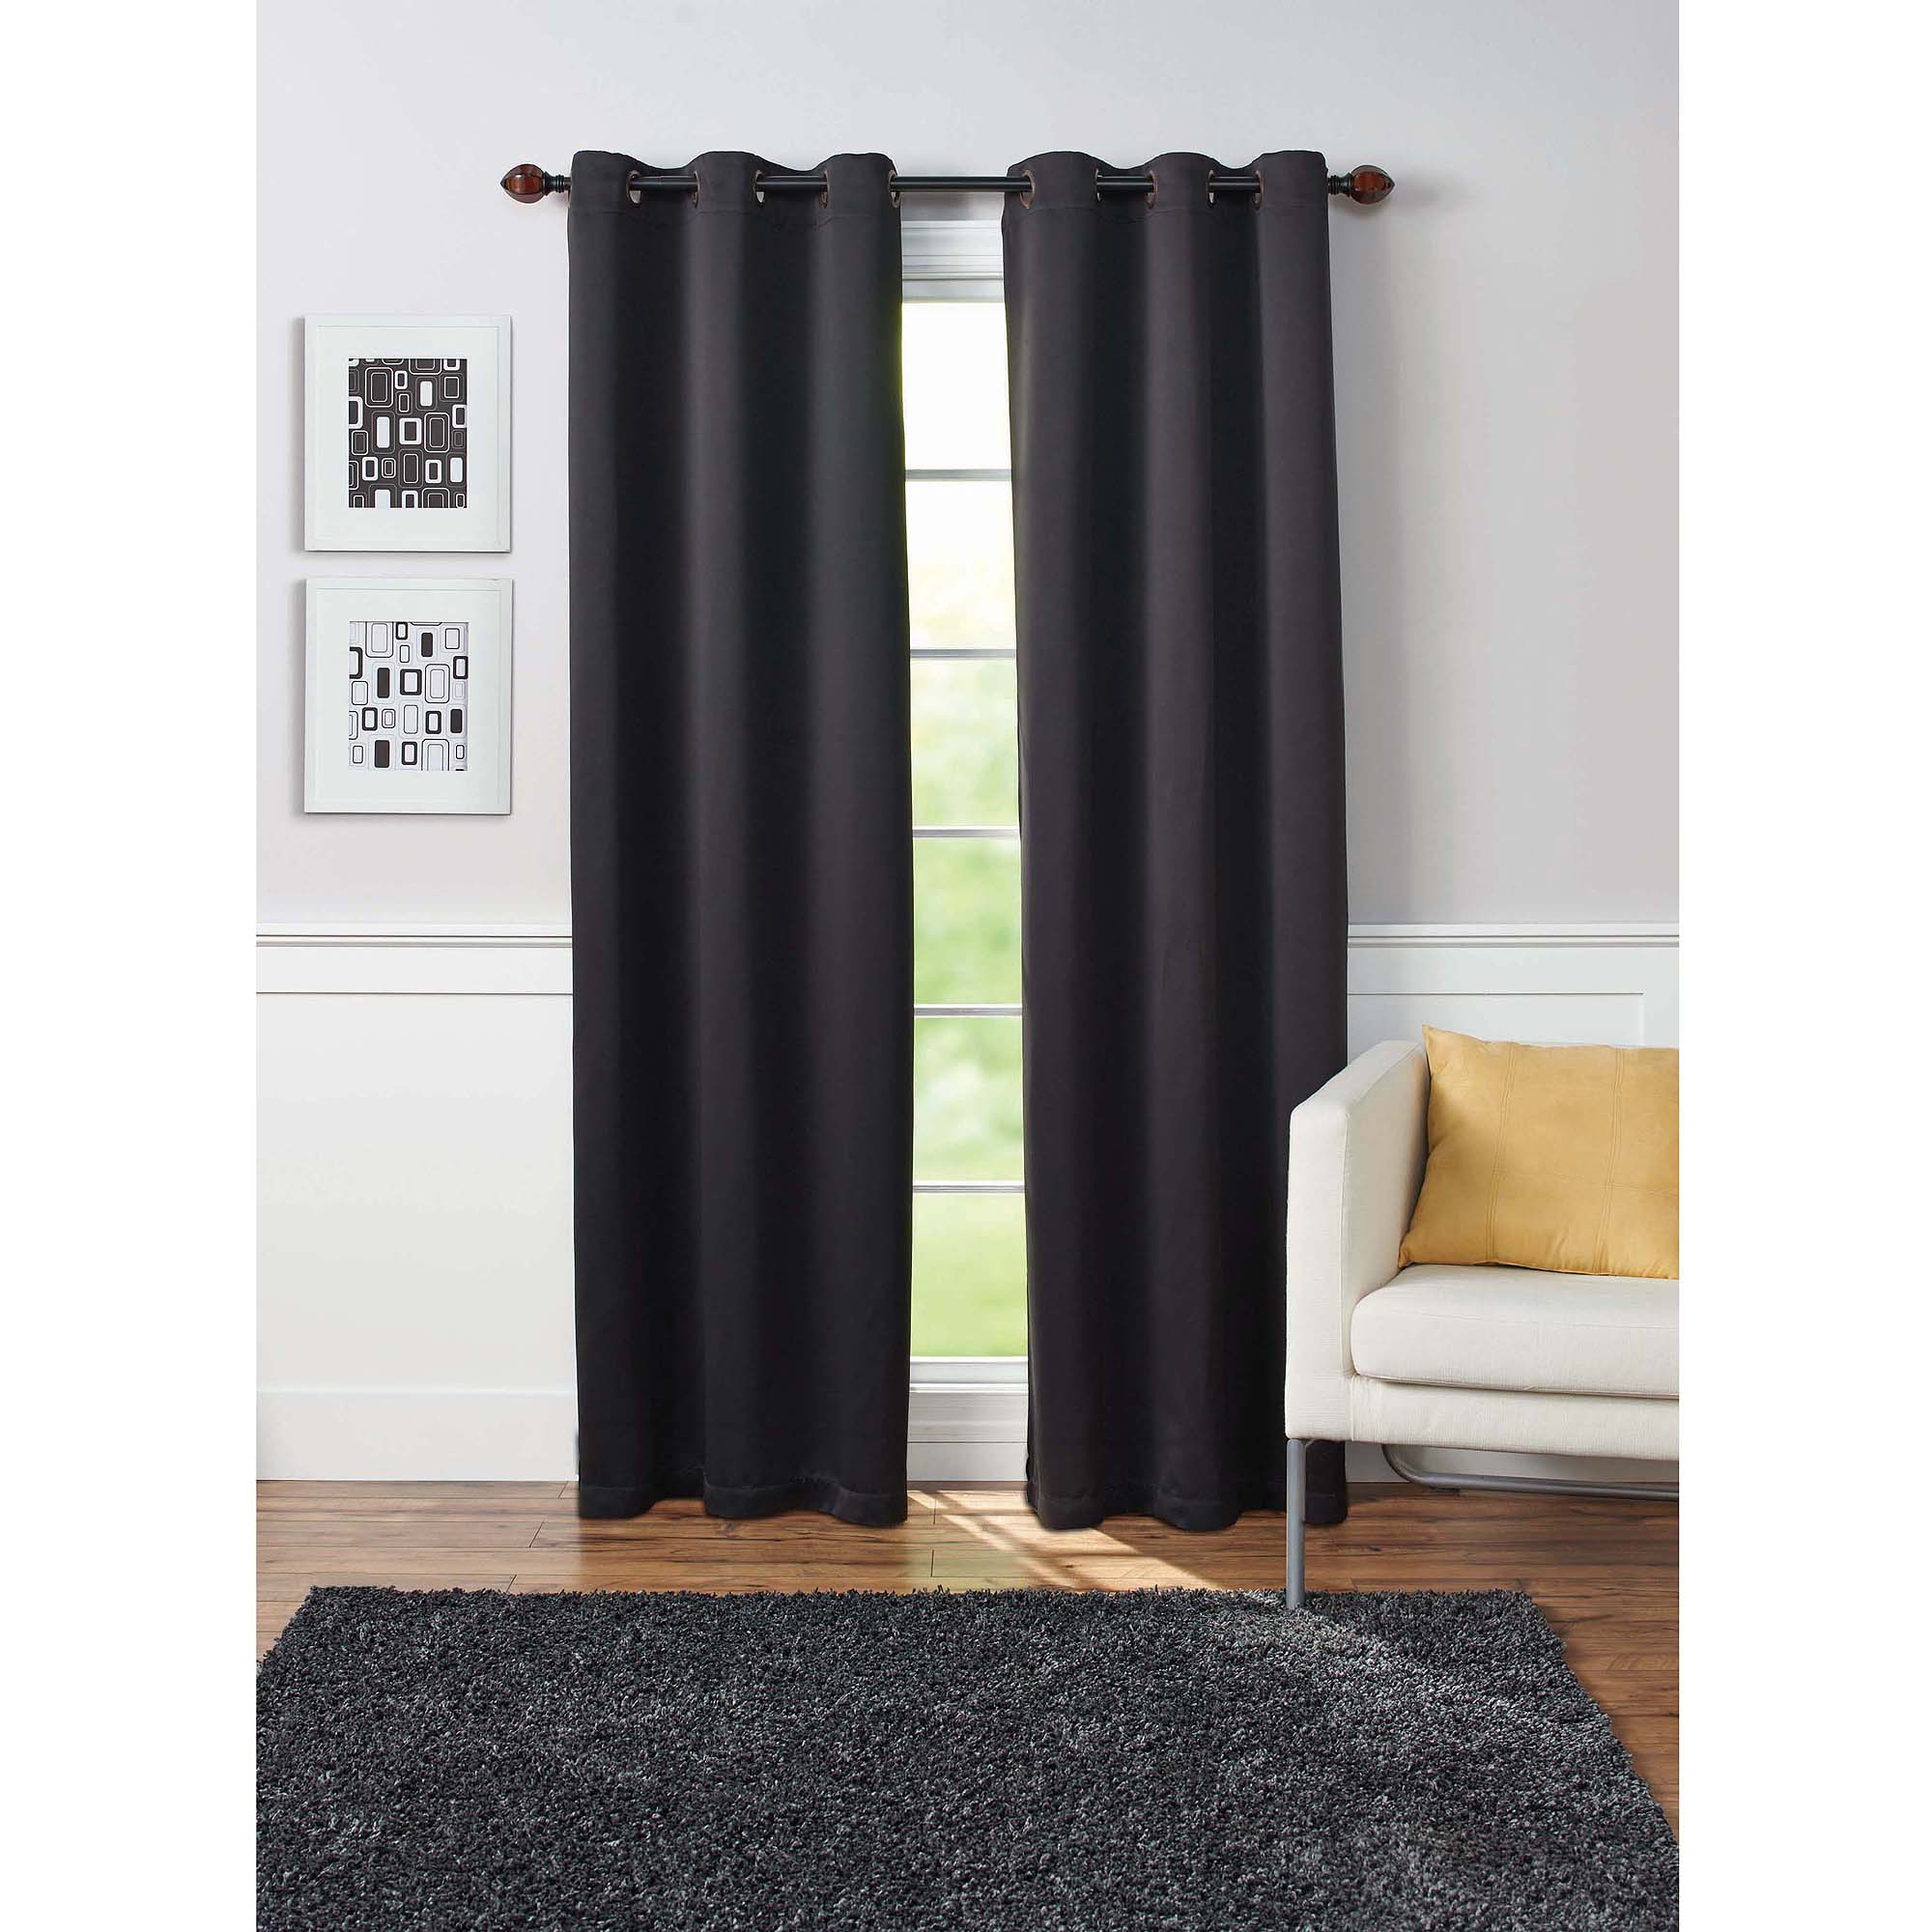 Cheap Blackout Curtains for Inspiring Home Decorating Ideas: Cheap Blackout Curtains | Blackout Curtain Panels | Cheap Curtains On Sale